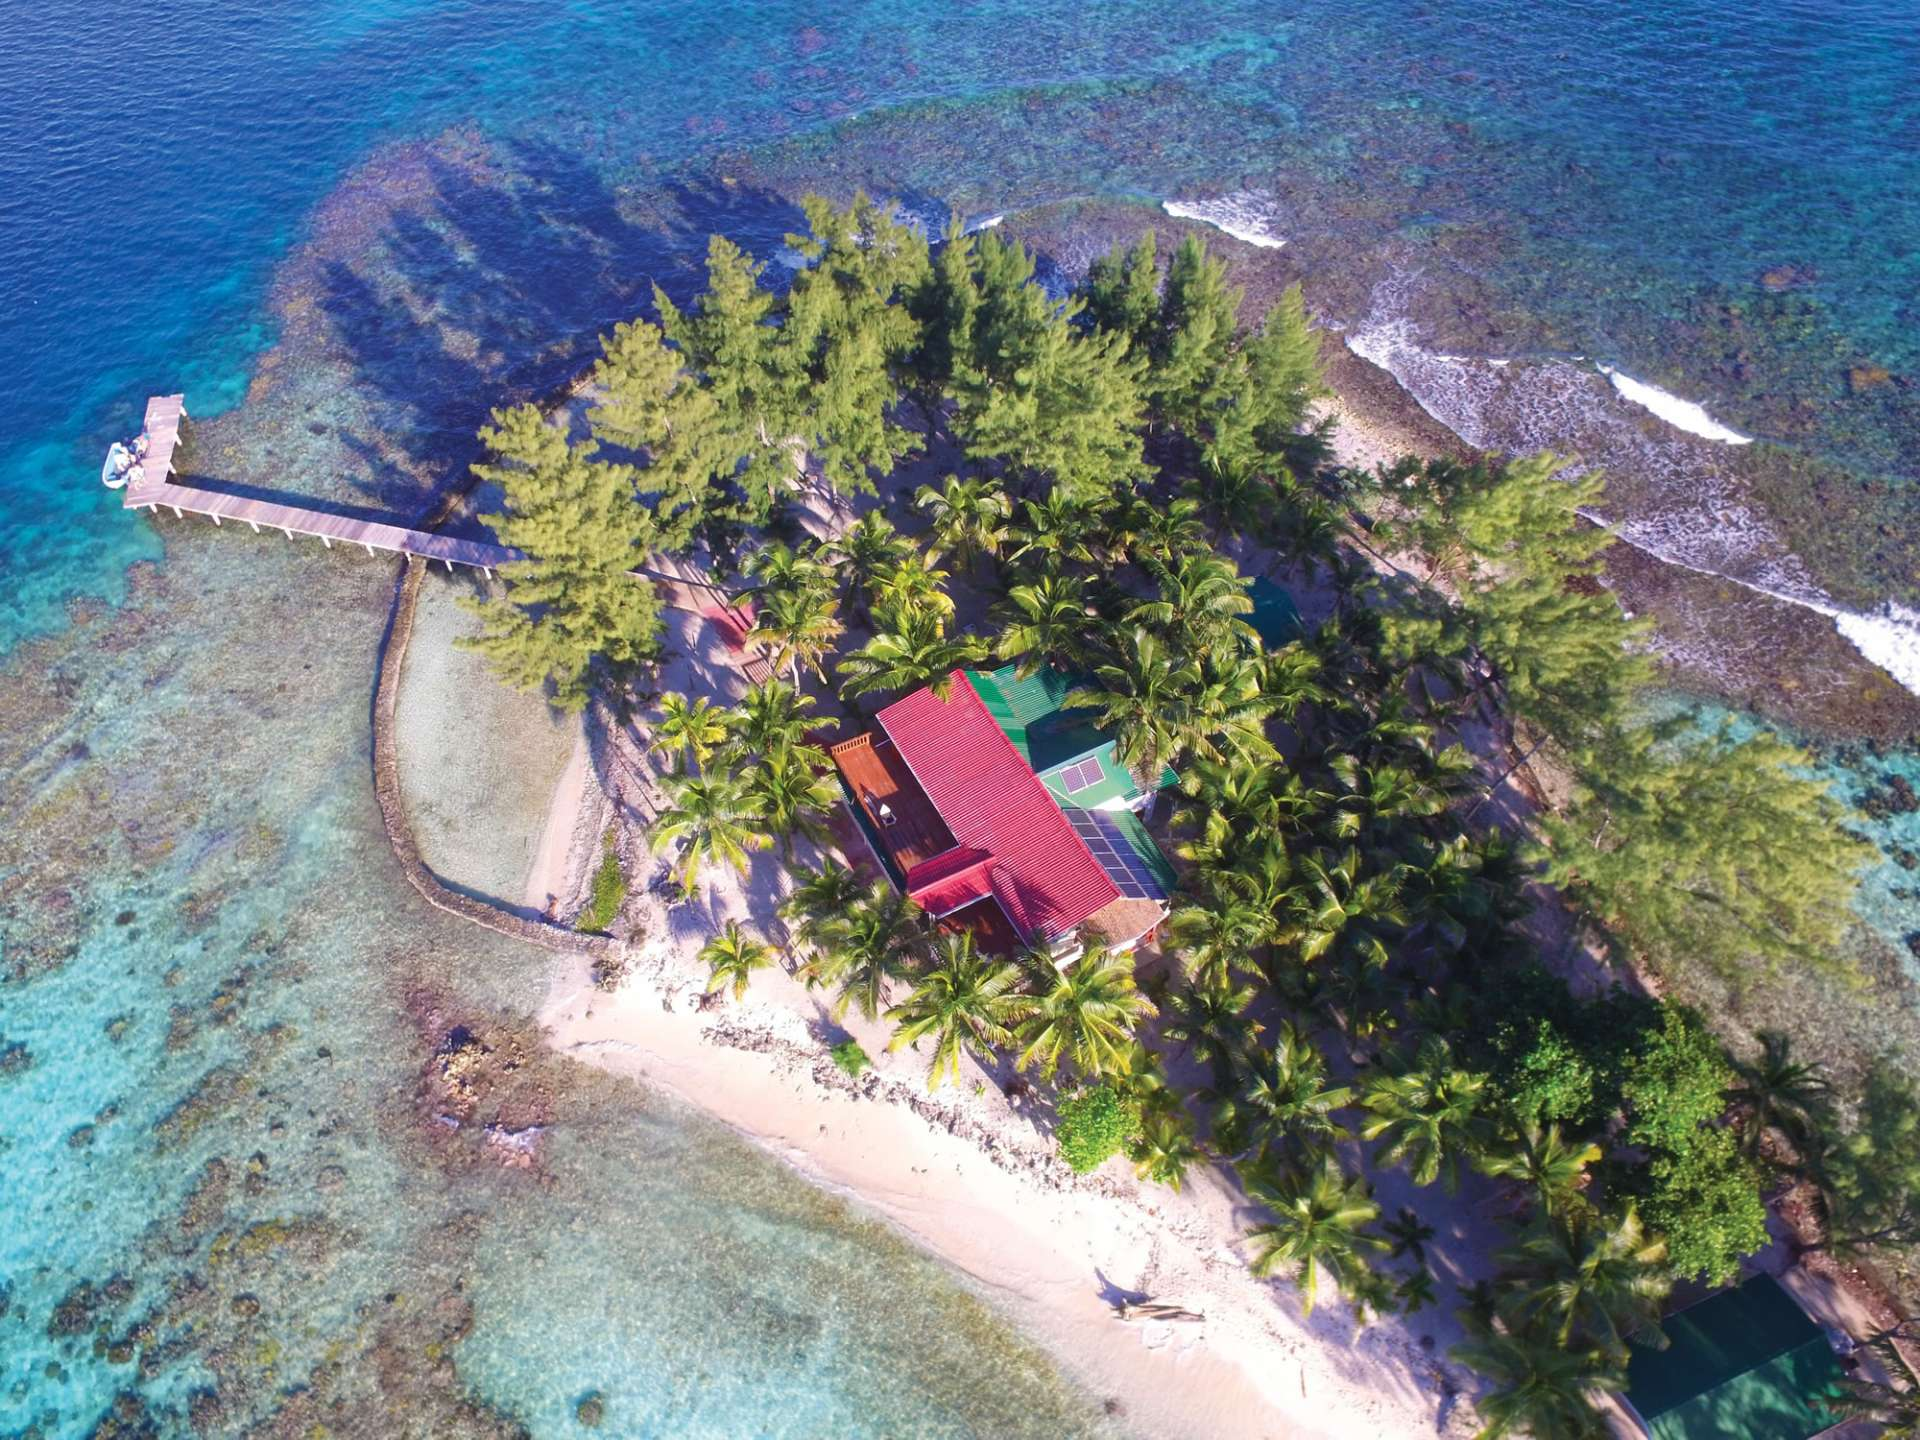 Share Us virgin island buisiness for sale final, sorry